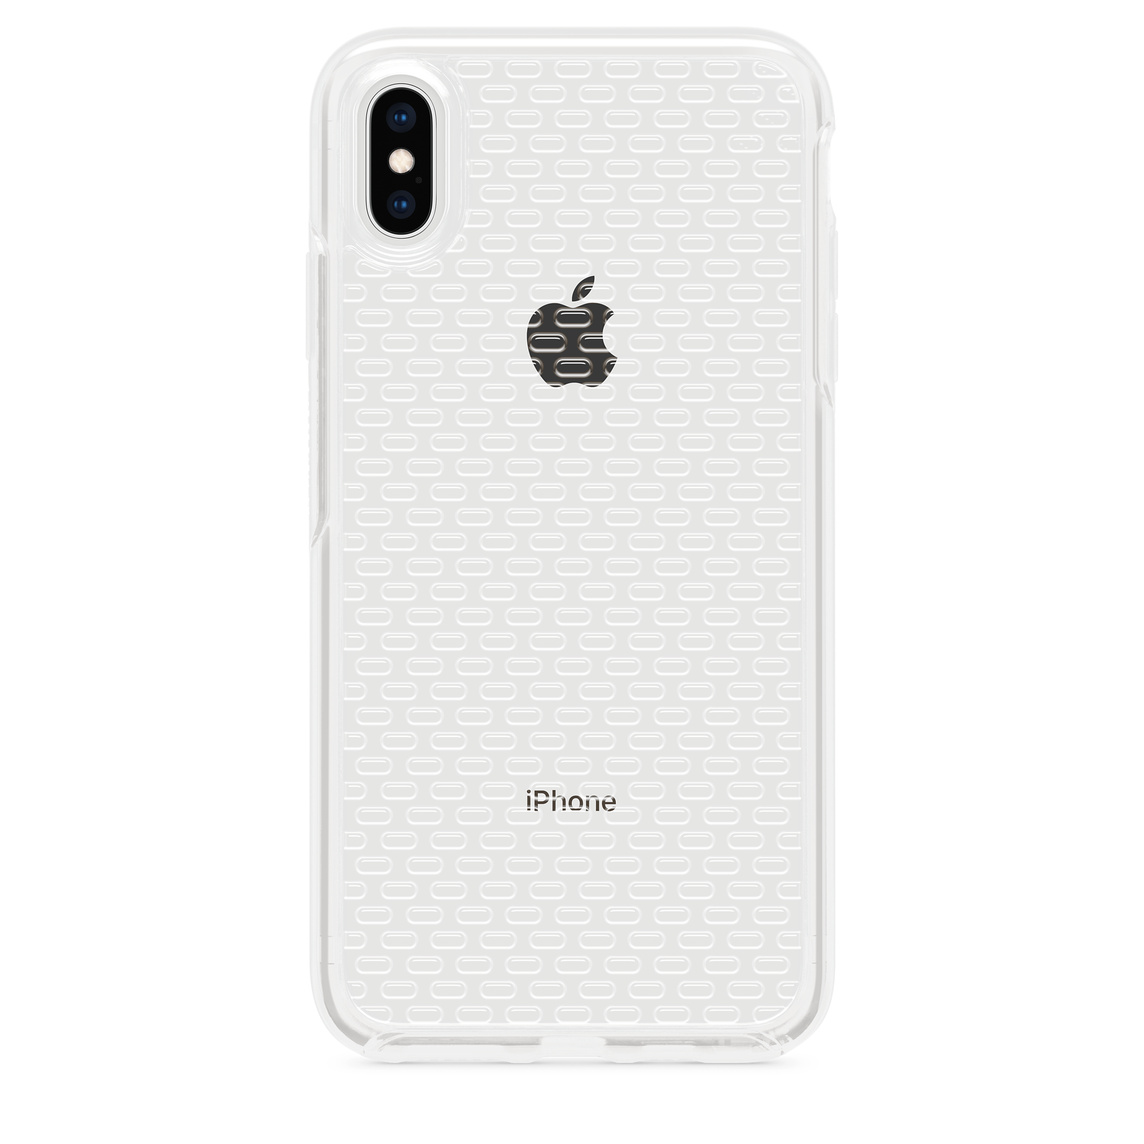 separation shoes 16790 69adf OtterBox Vue Series Case for iPhone XS Max - Clear